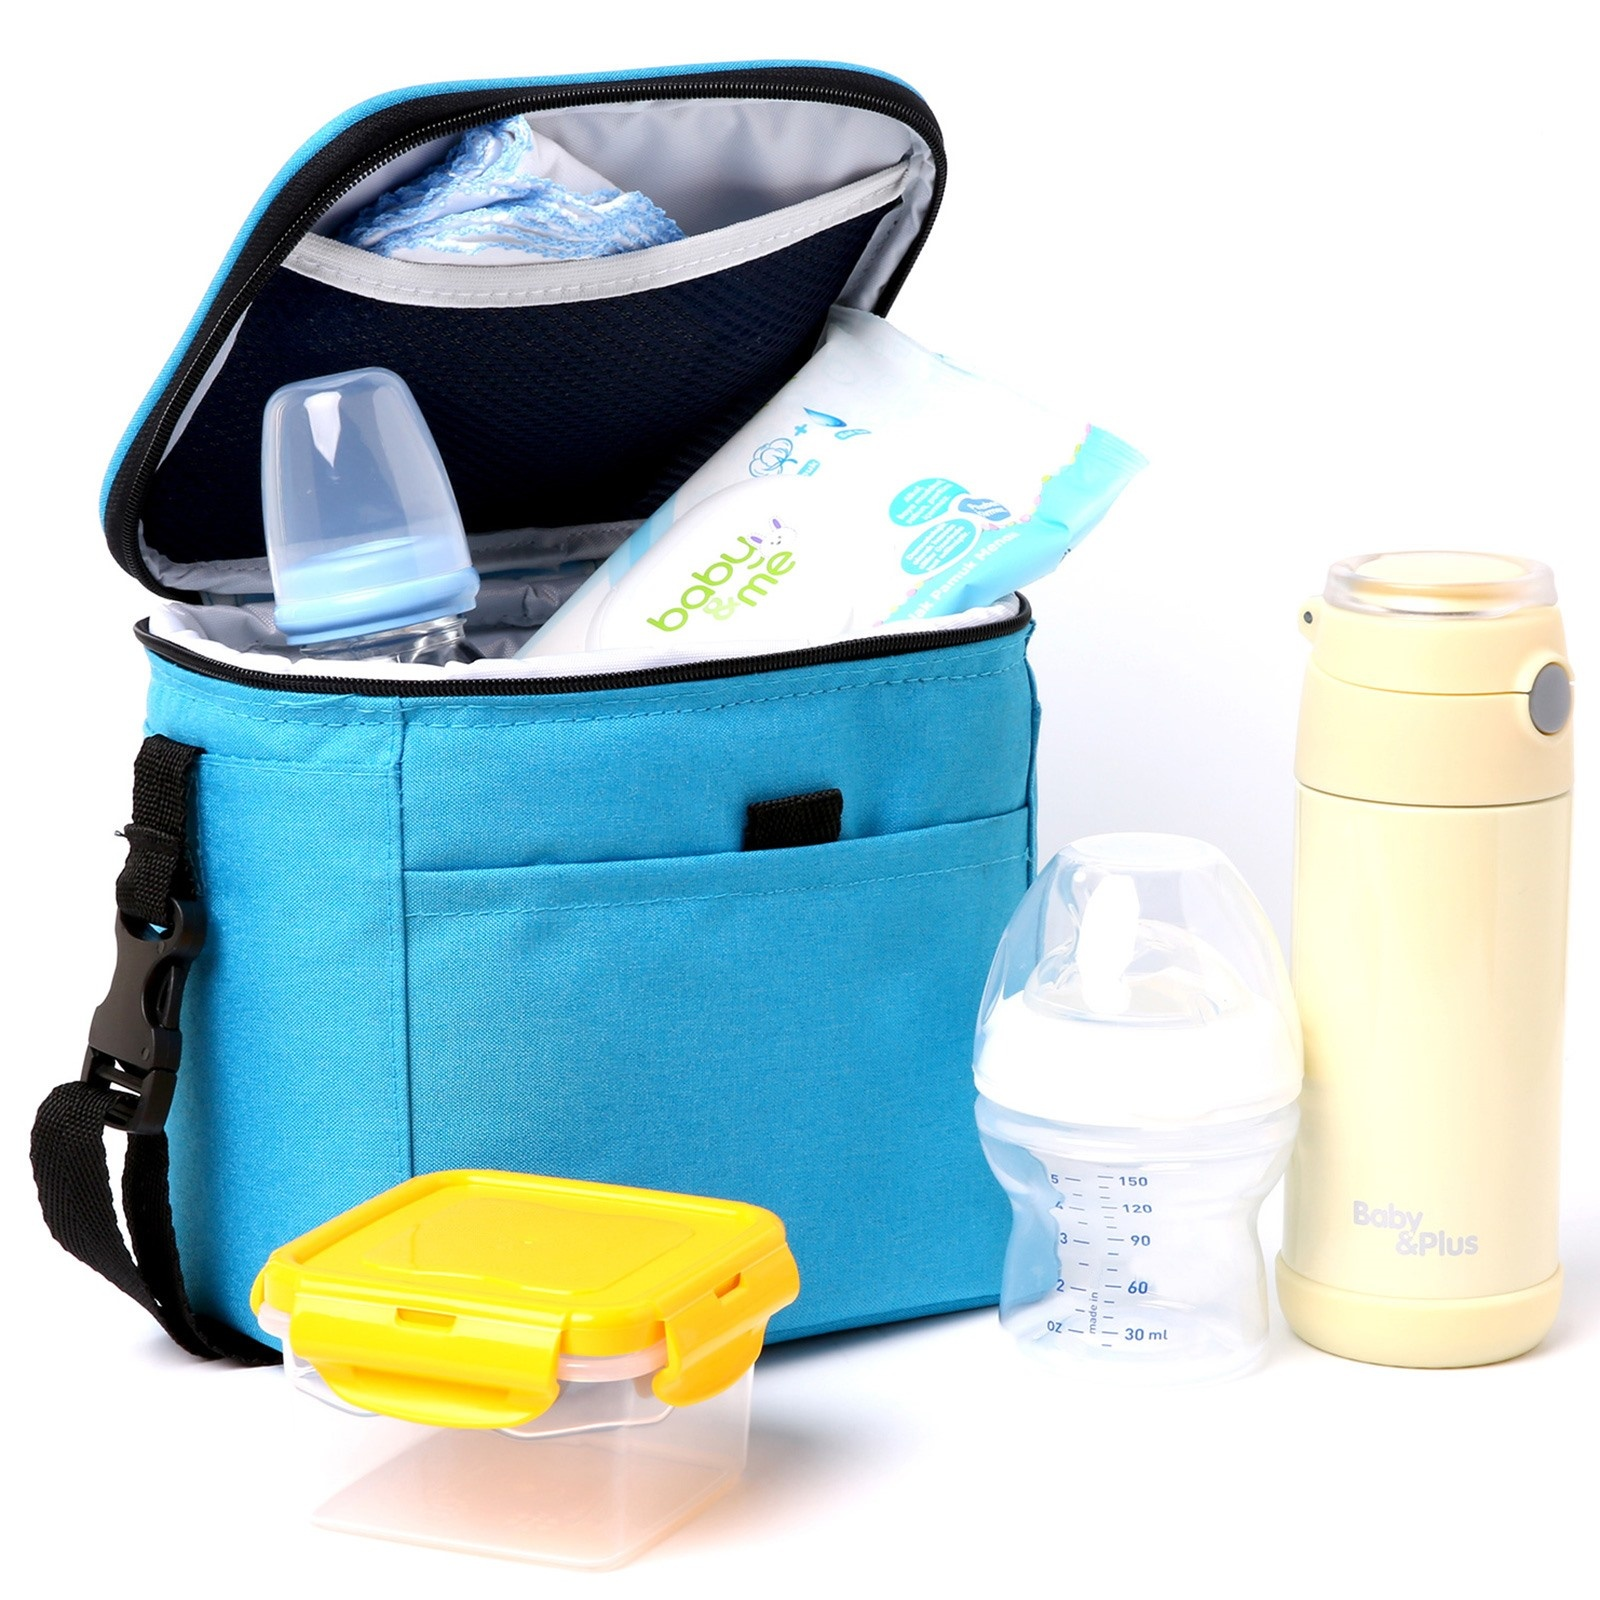 Ebebek Baby Plus Insulated Food And Baby Bottle Bag